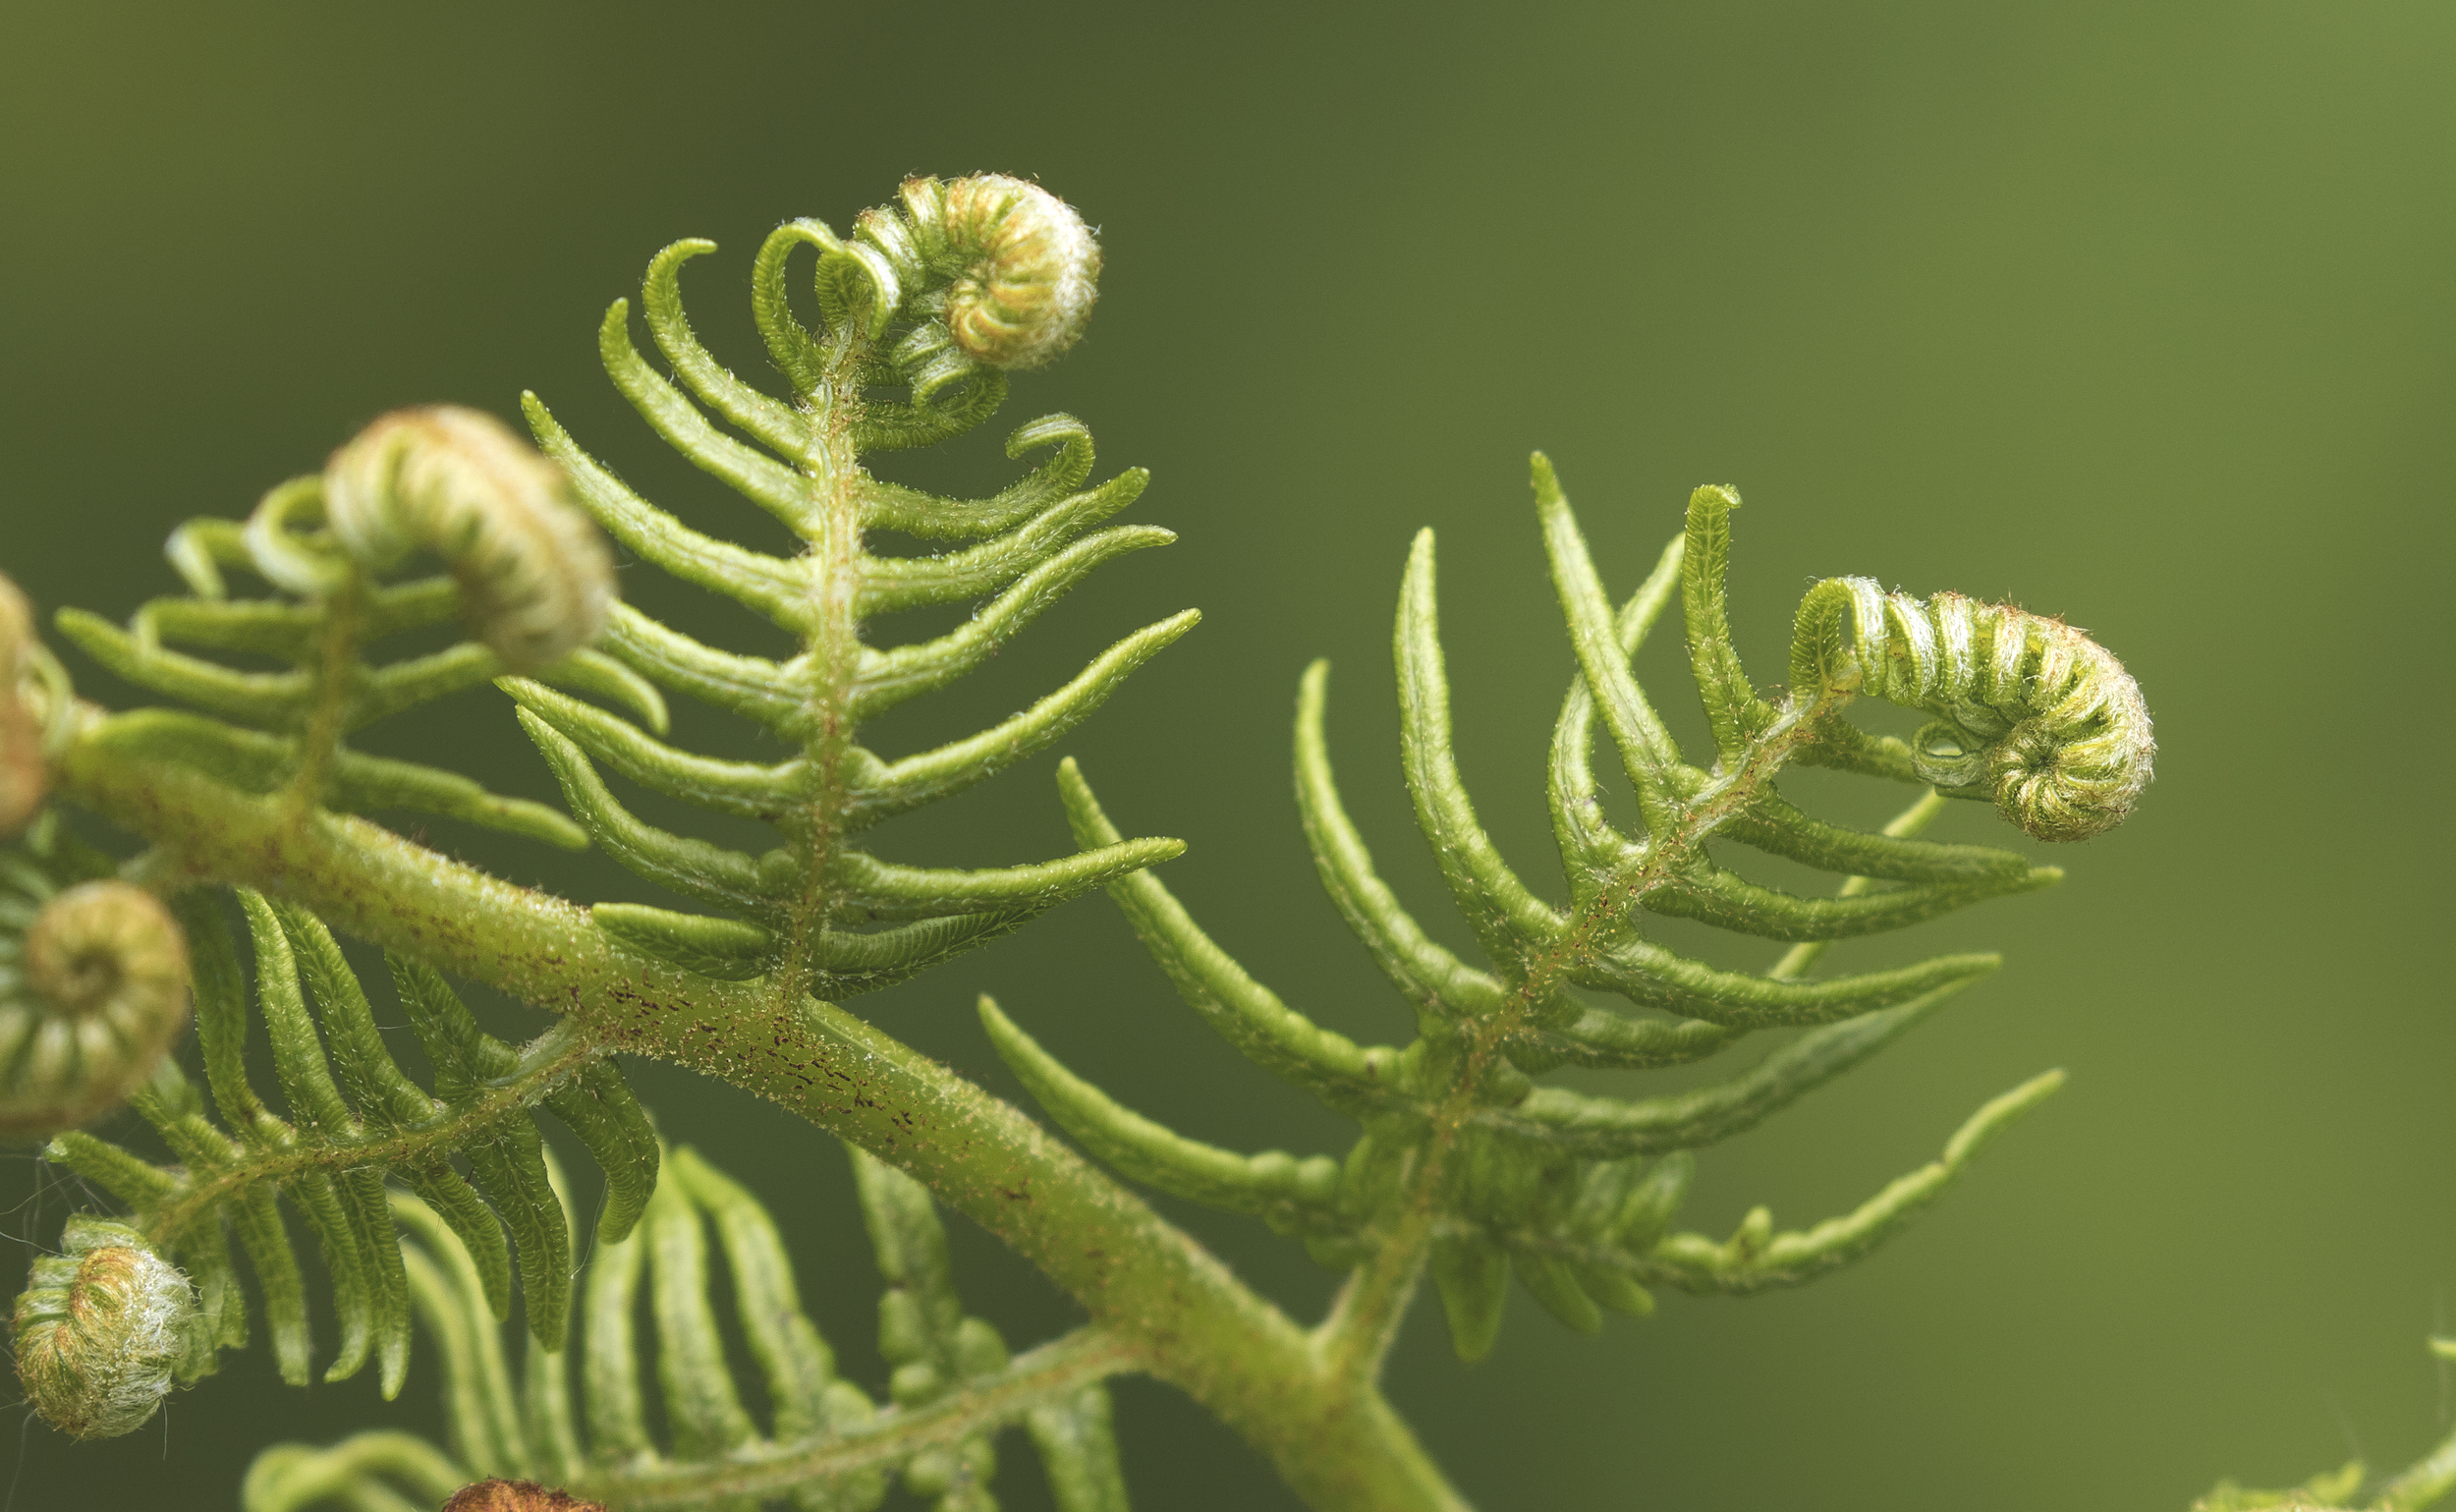 Fern Shapes 1 5th June.jpg